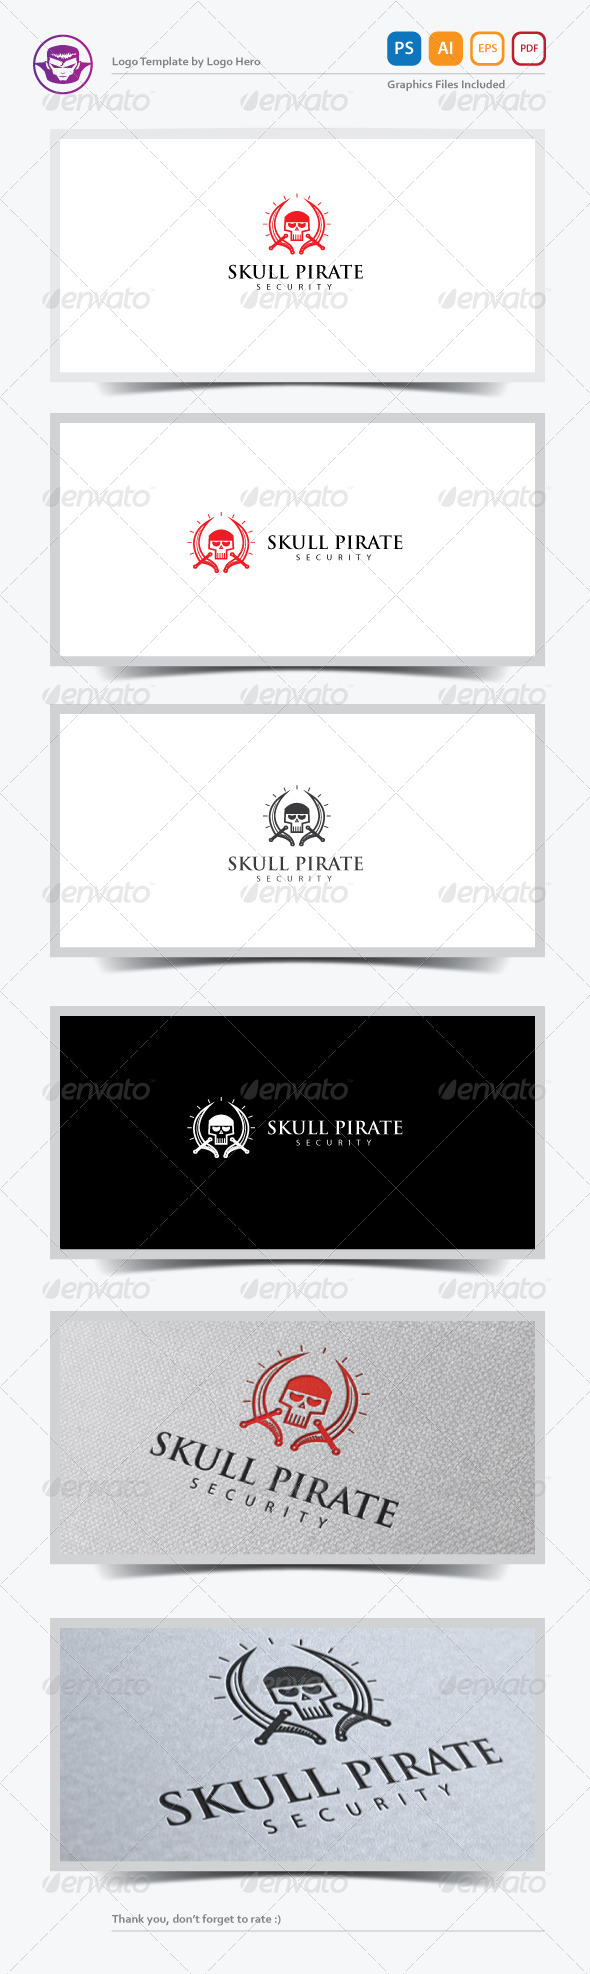 GraphicRiver Skull Pirate Logo Template 7499151